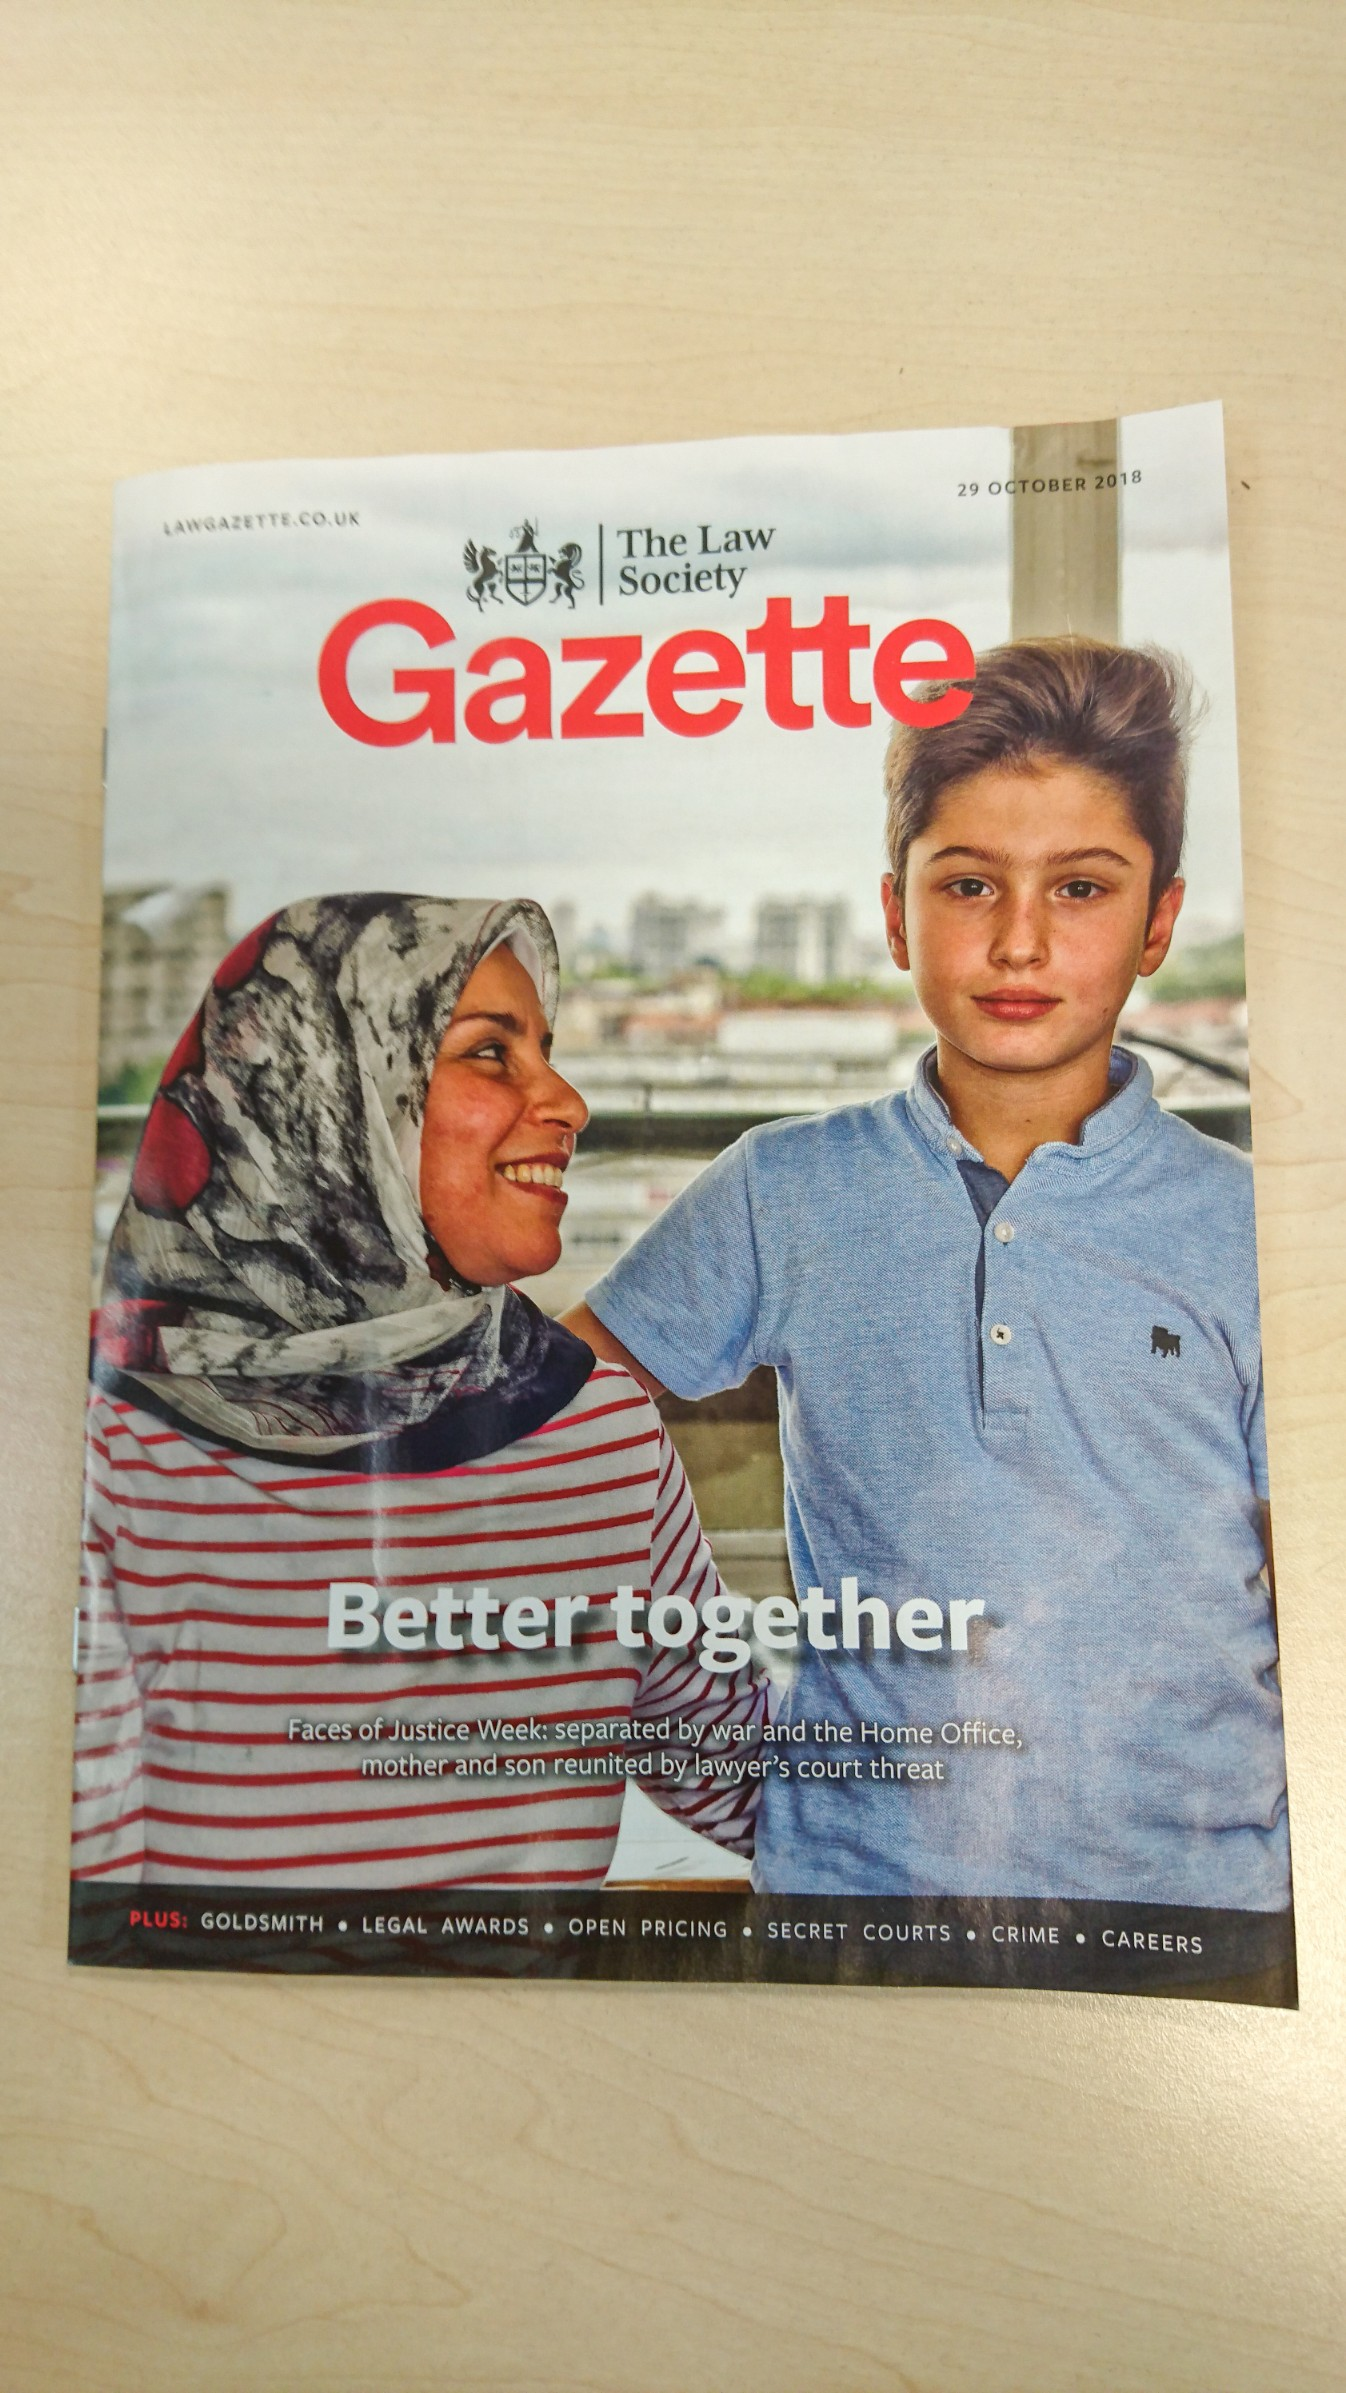 Chahla and Omar's photo on the front cover of the 'Gazette' magazine